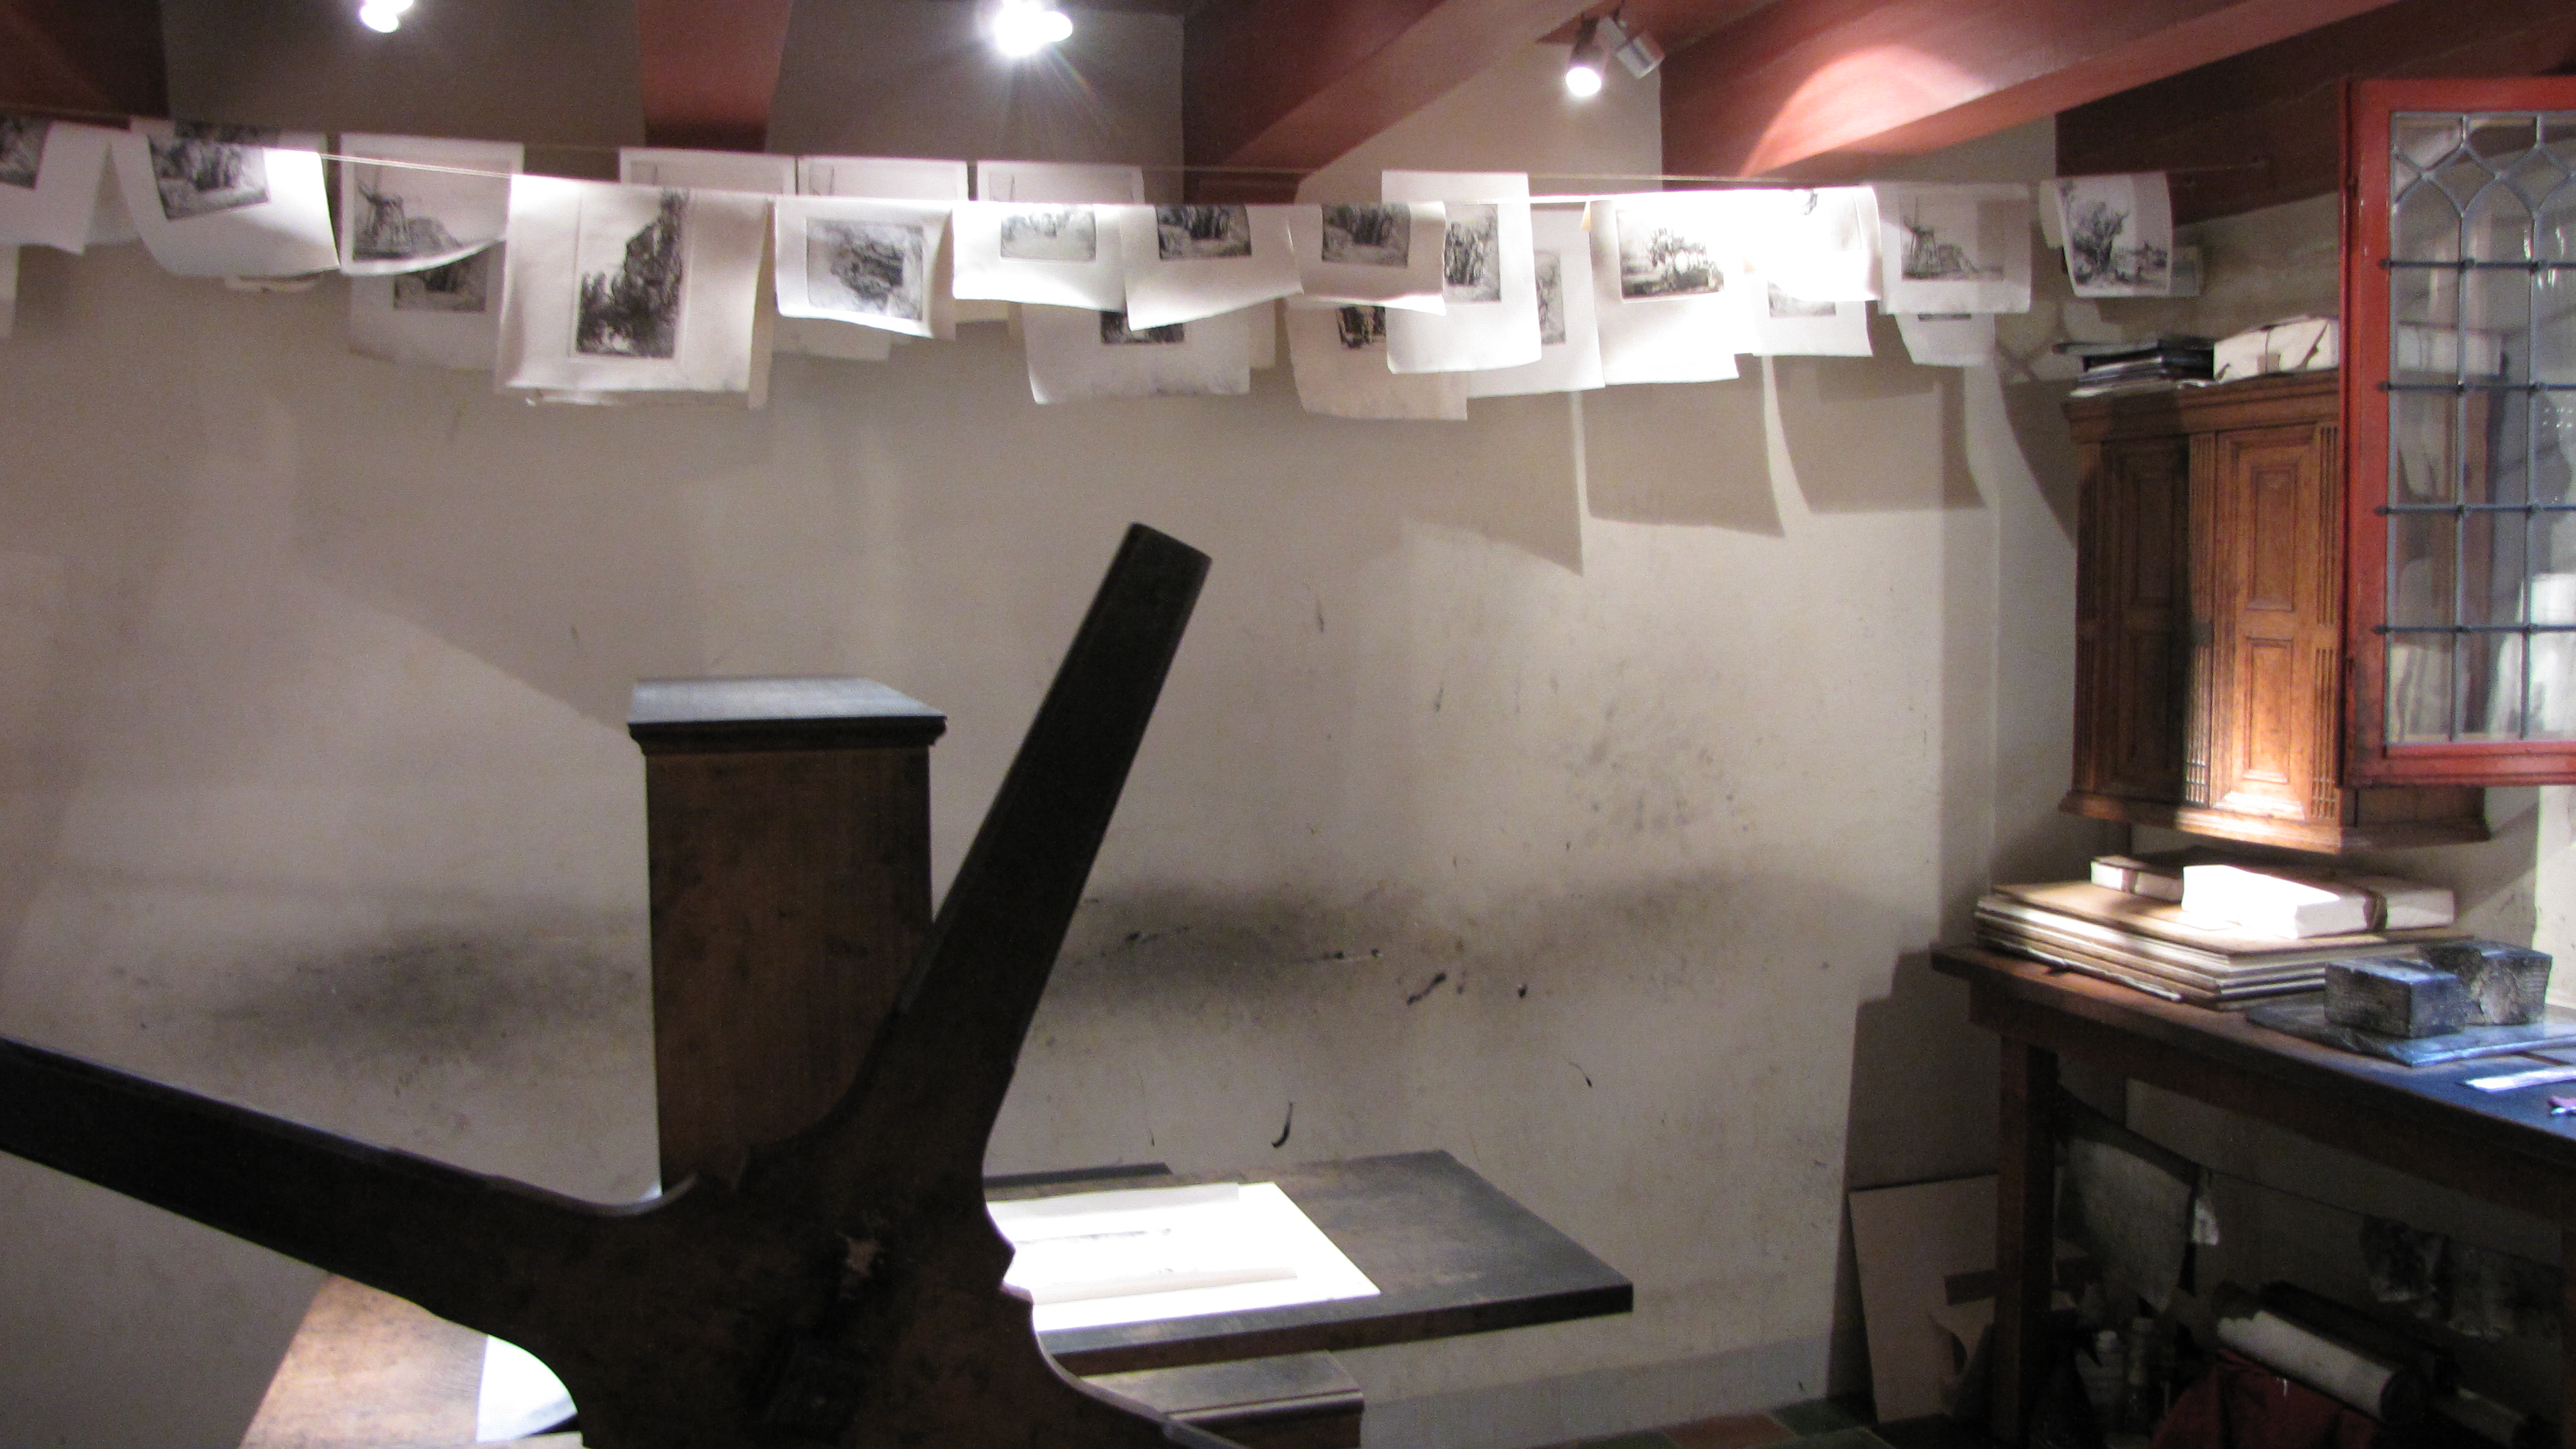 The Rembrandt House Museum